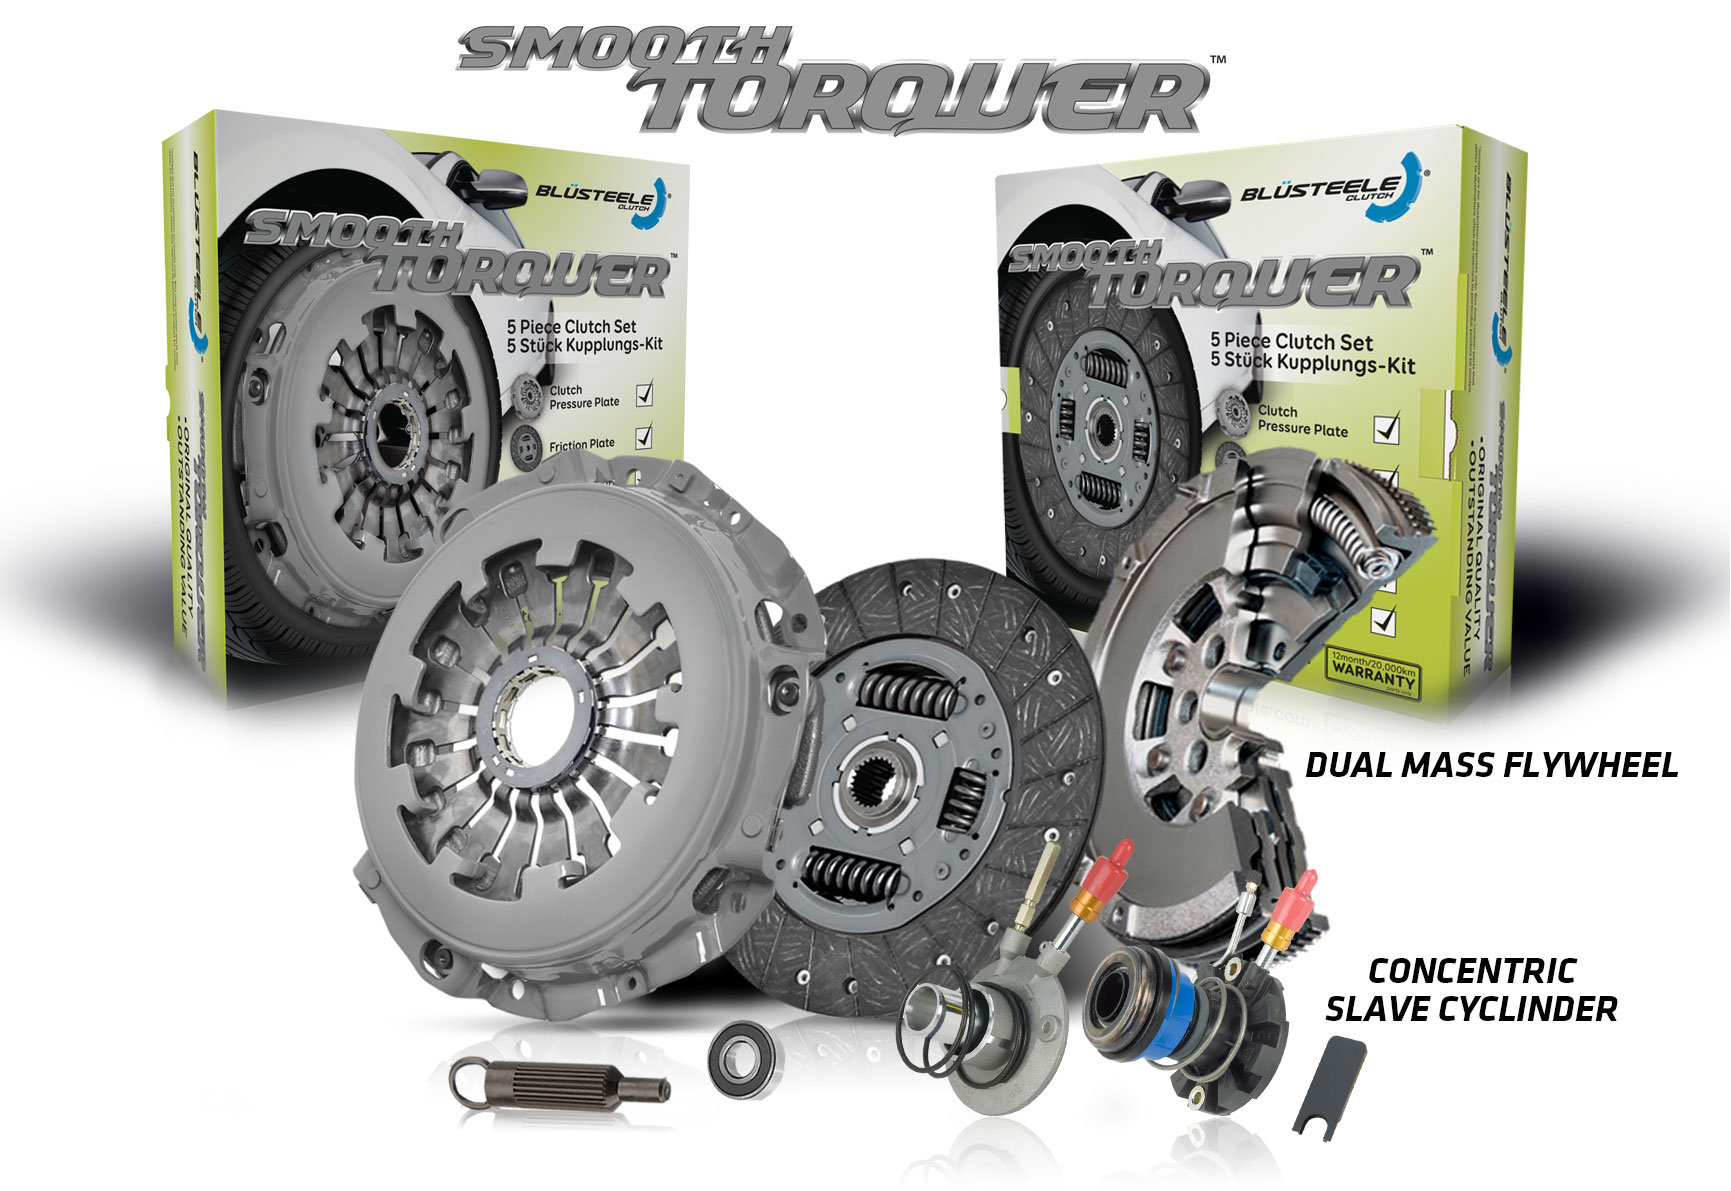 Image Is Loading Blusteele Dual Mass Flywheel Clutch Kit For Mazda